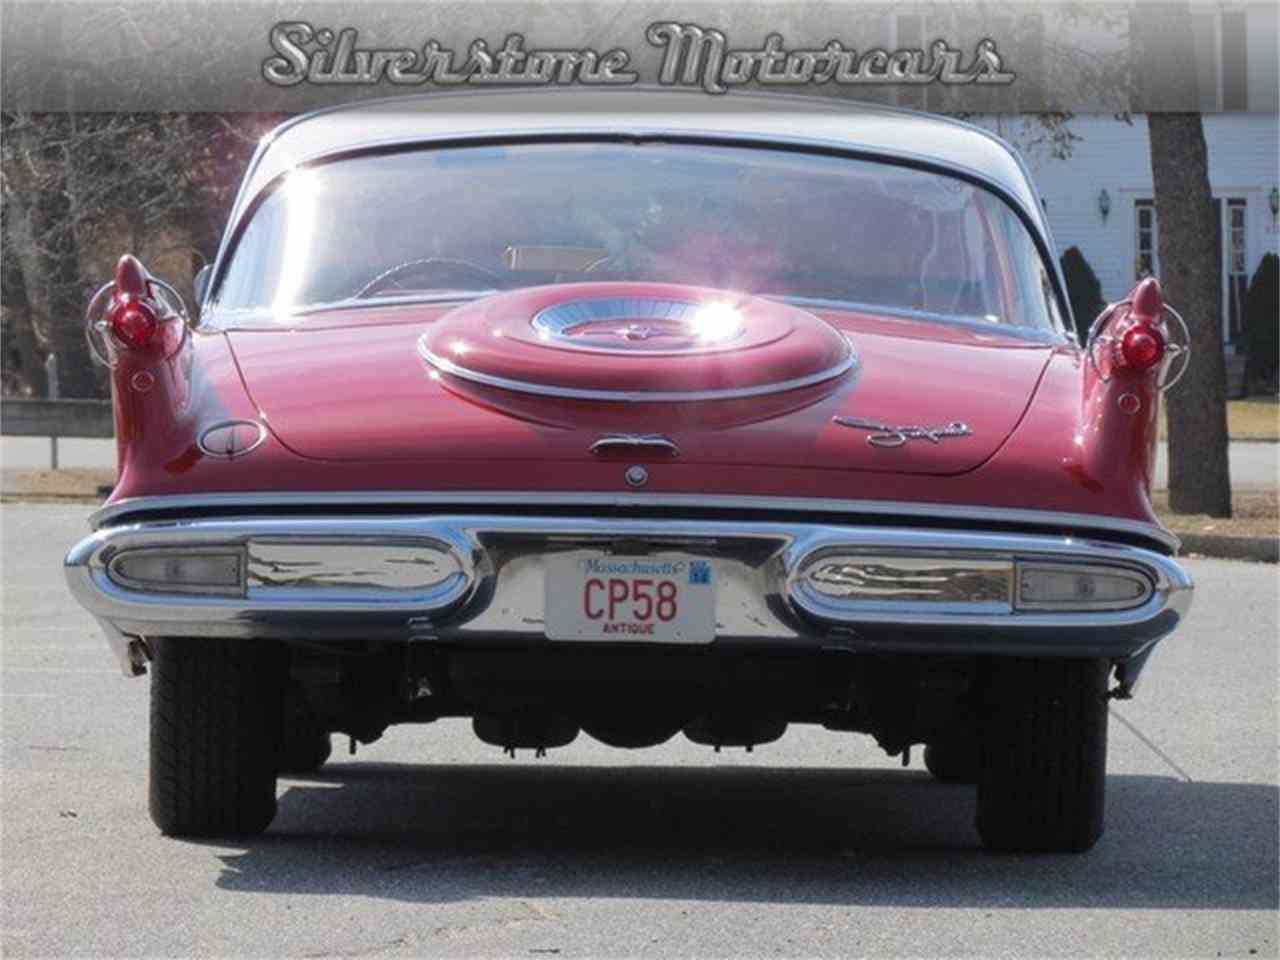 Large Picture of Classic '58 Chrysler Southampton Offered by Silverstone Motorcars - F8I7